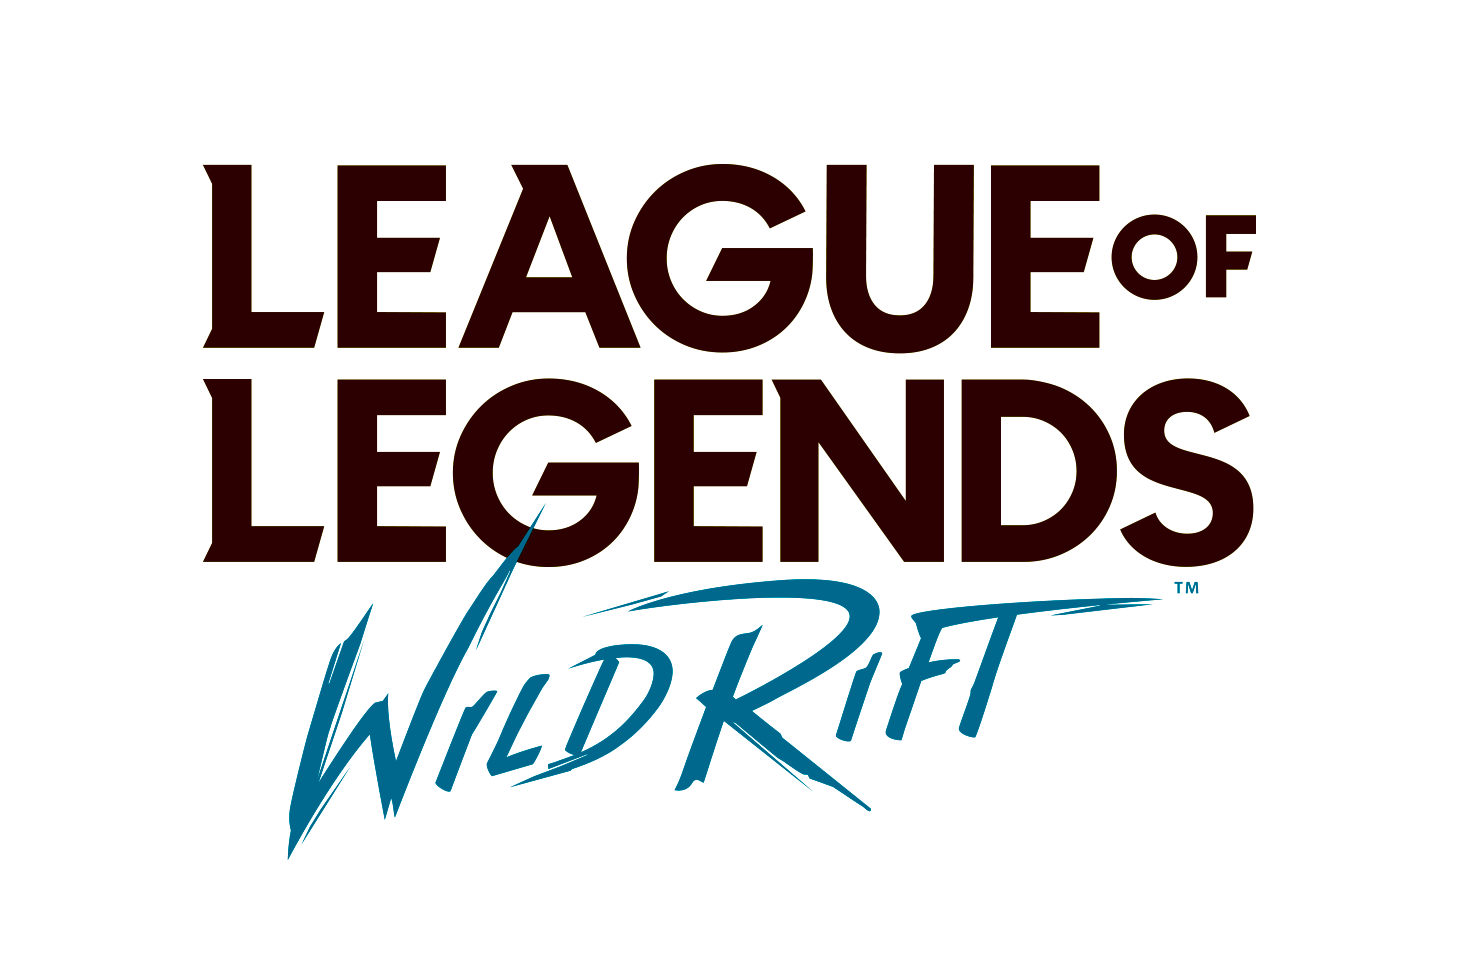 파일:leagueoflegends-wildRift_logo.png